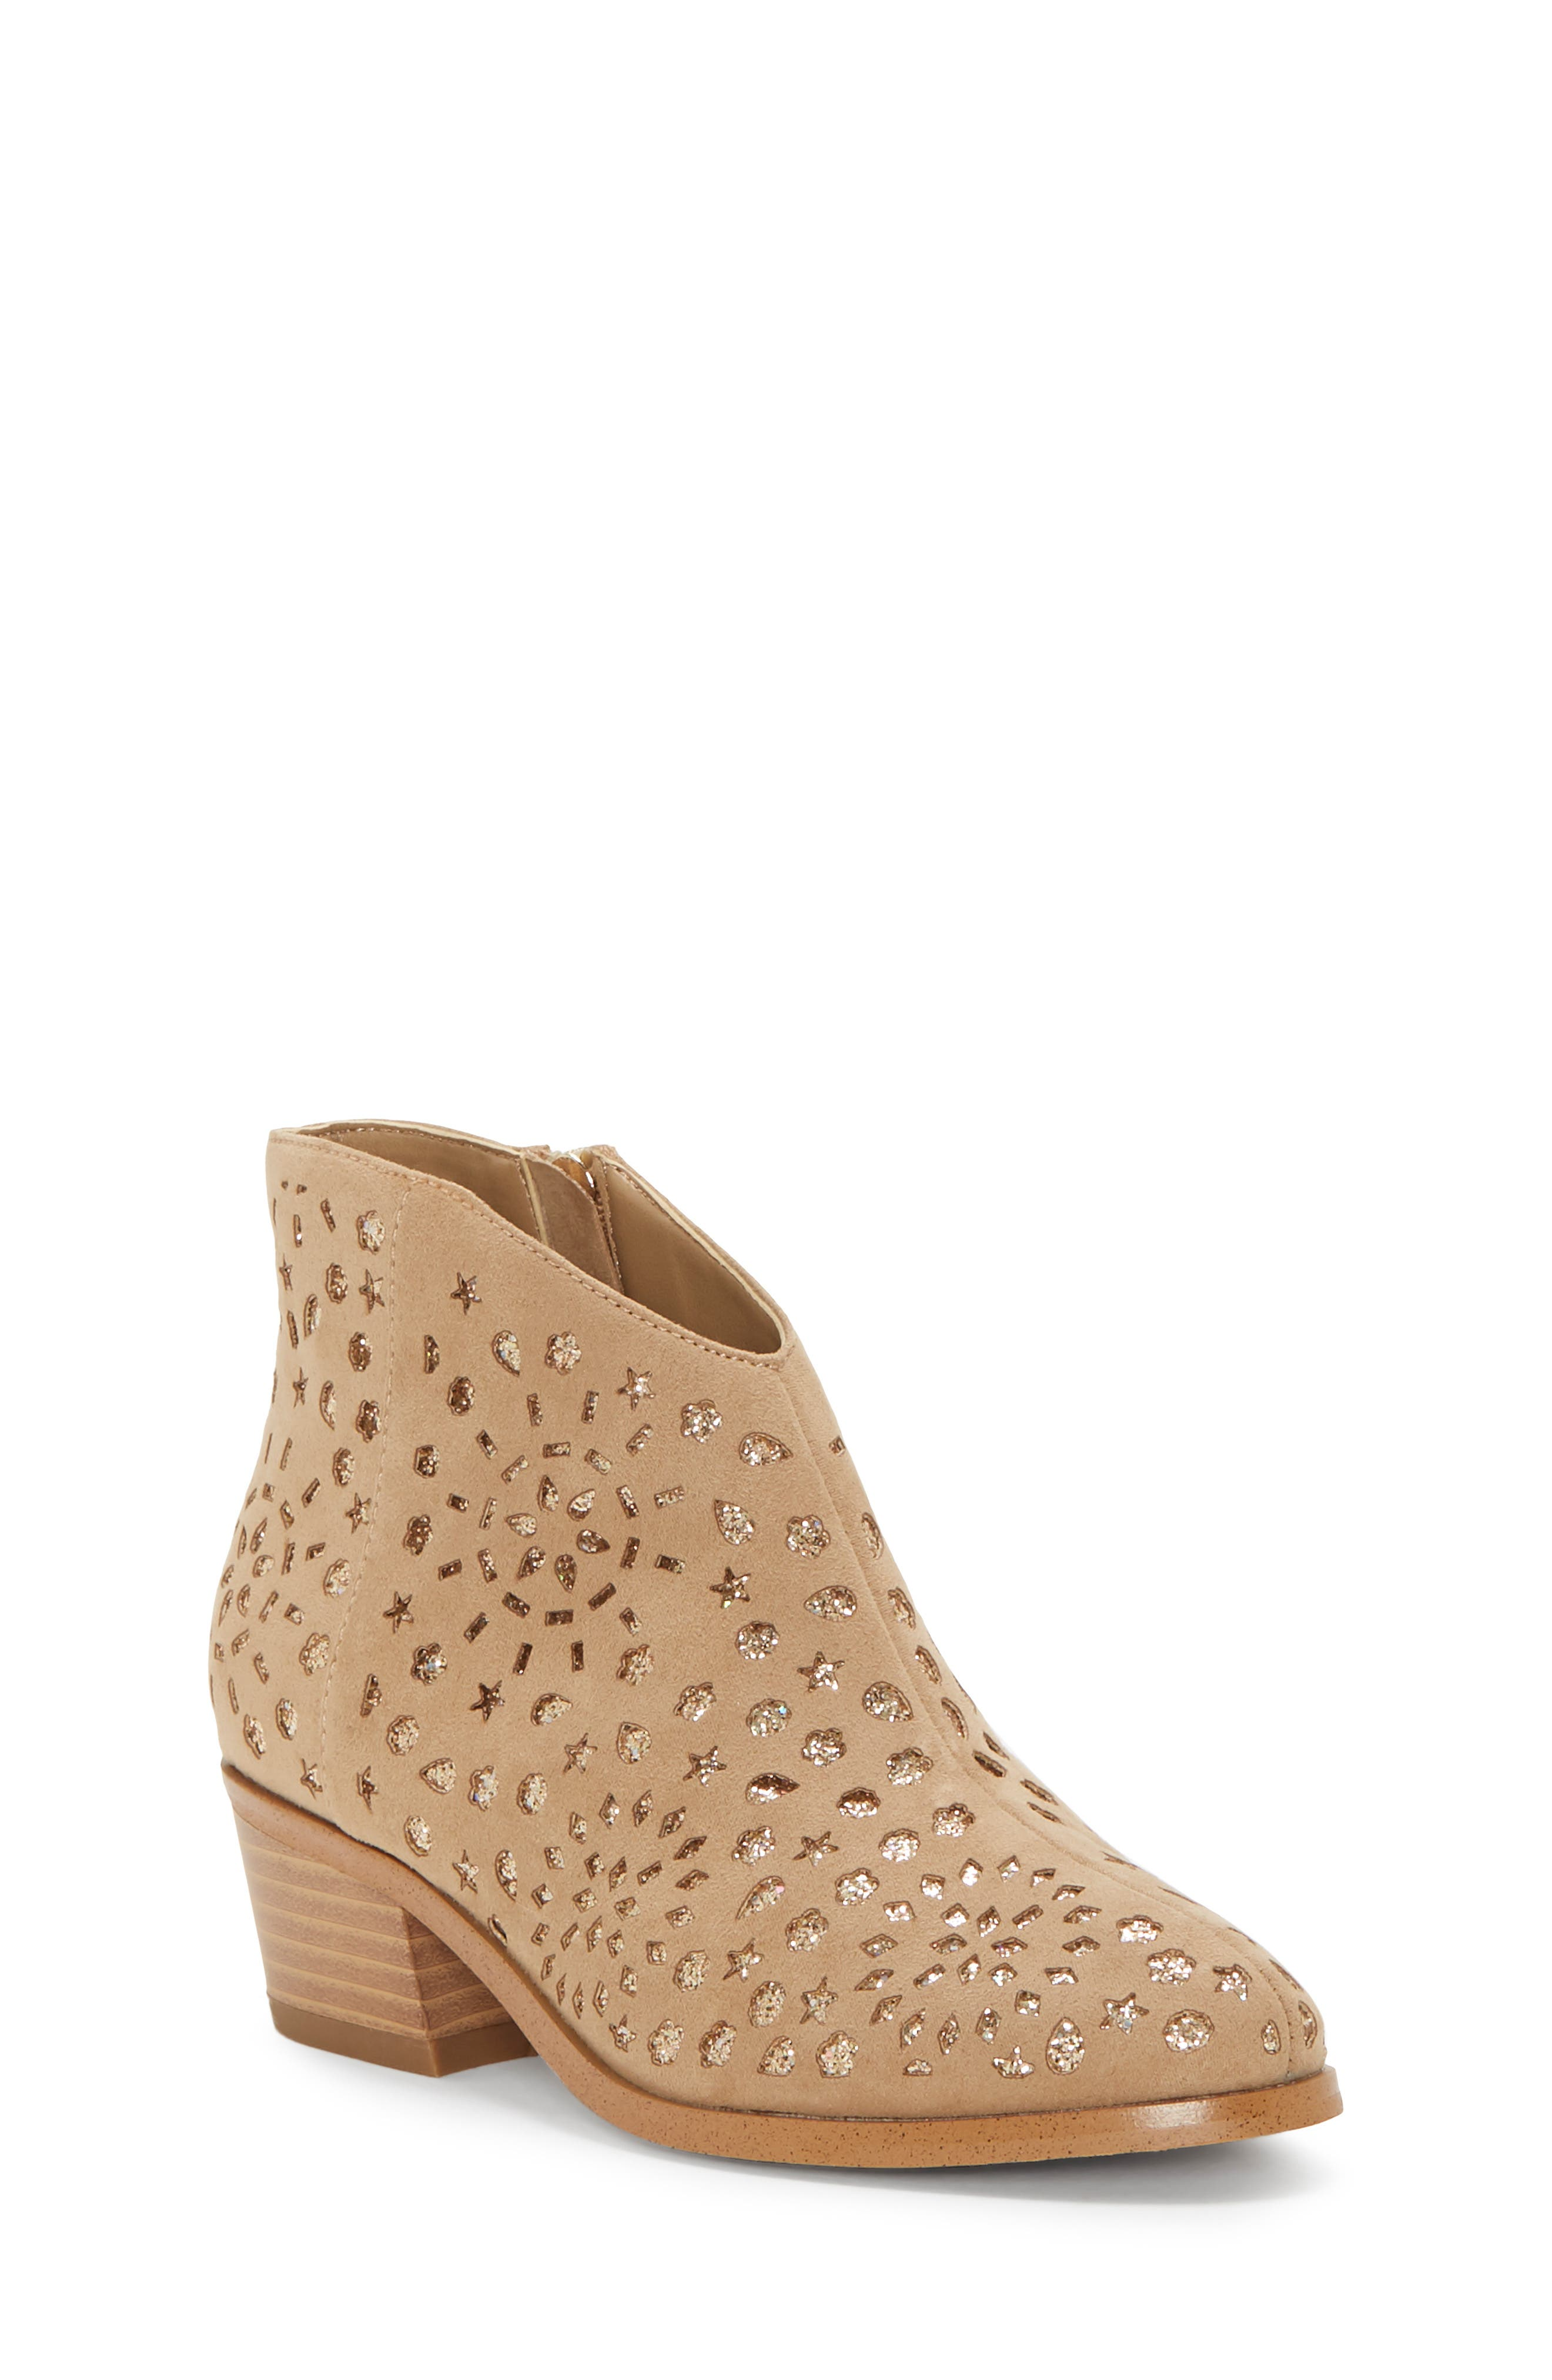 VINCE CAMUTO, Perforated Glitter Boot, Main thumbnail 1, color, 718